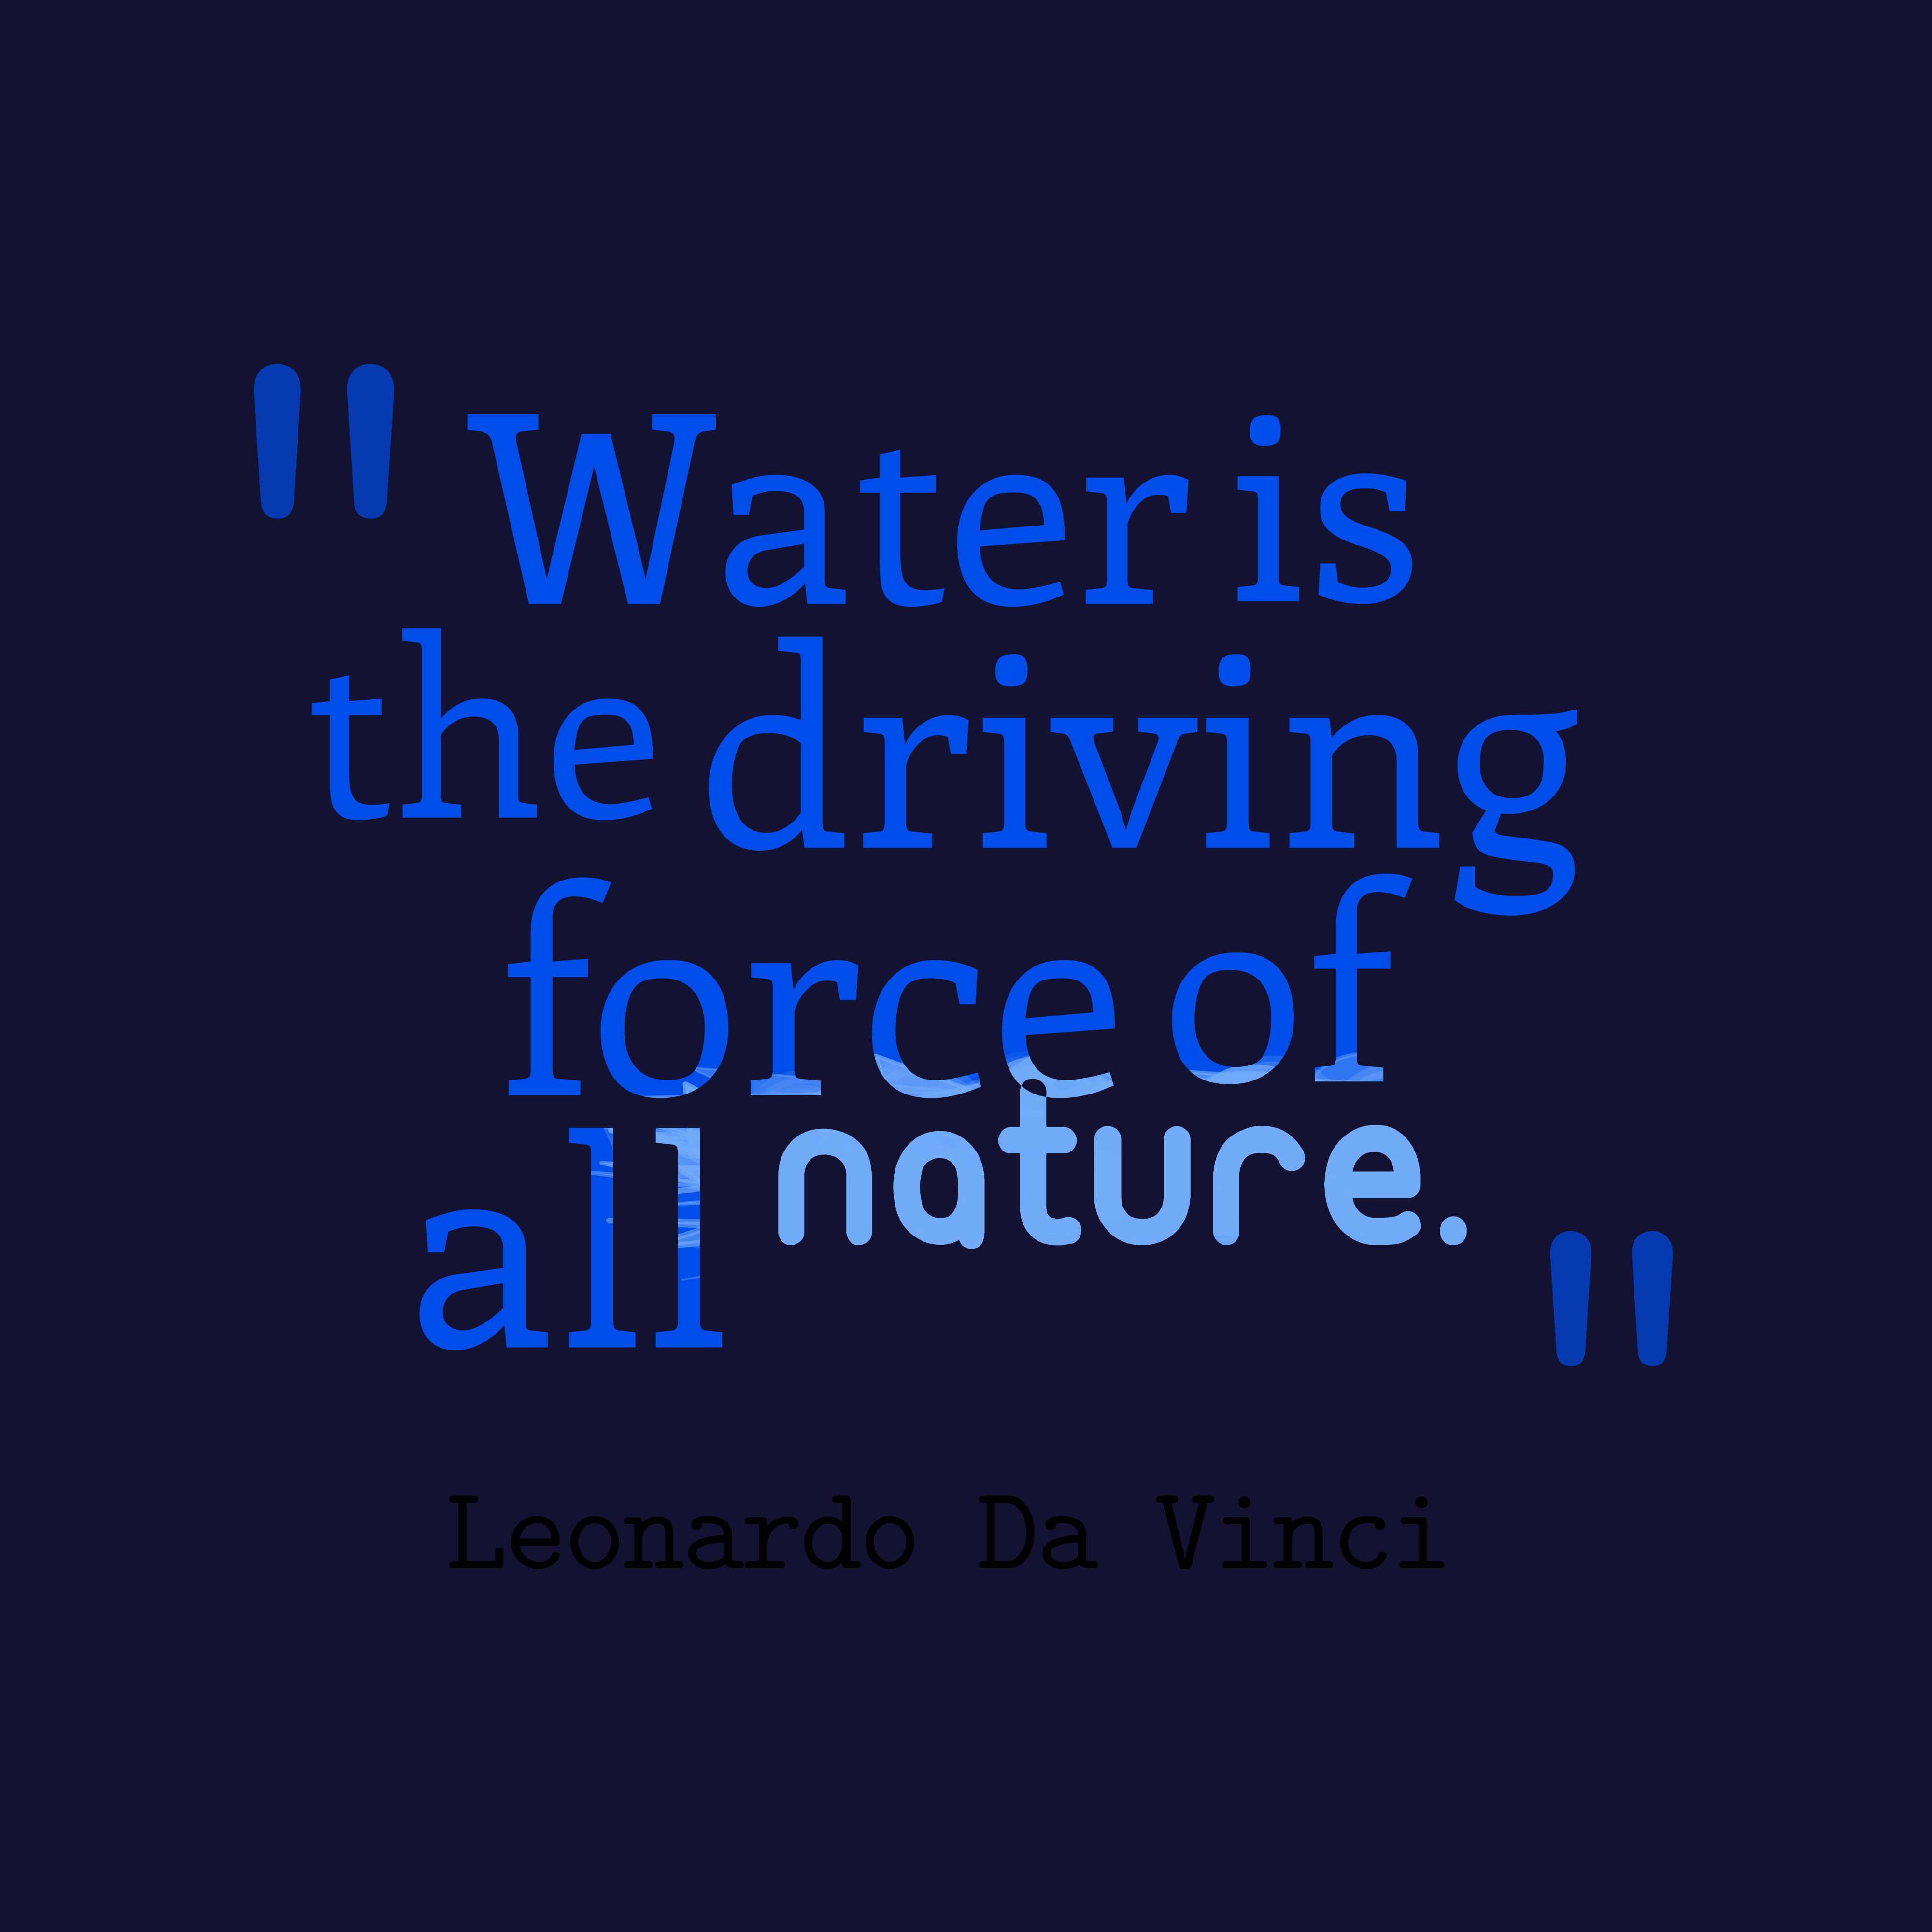 Image Water is the driving force of all nature